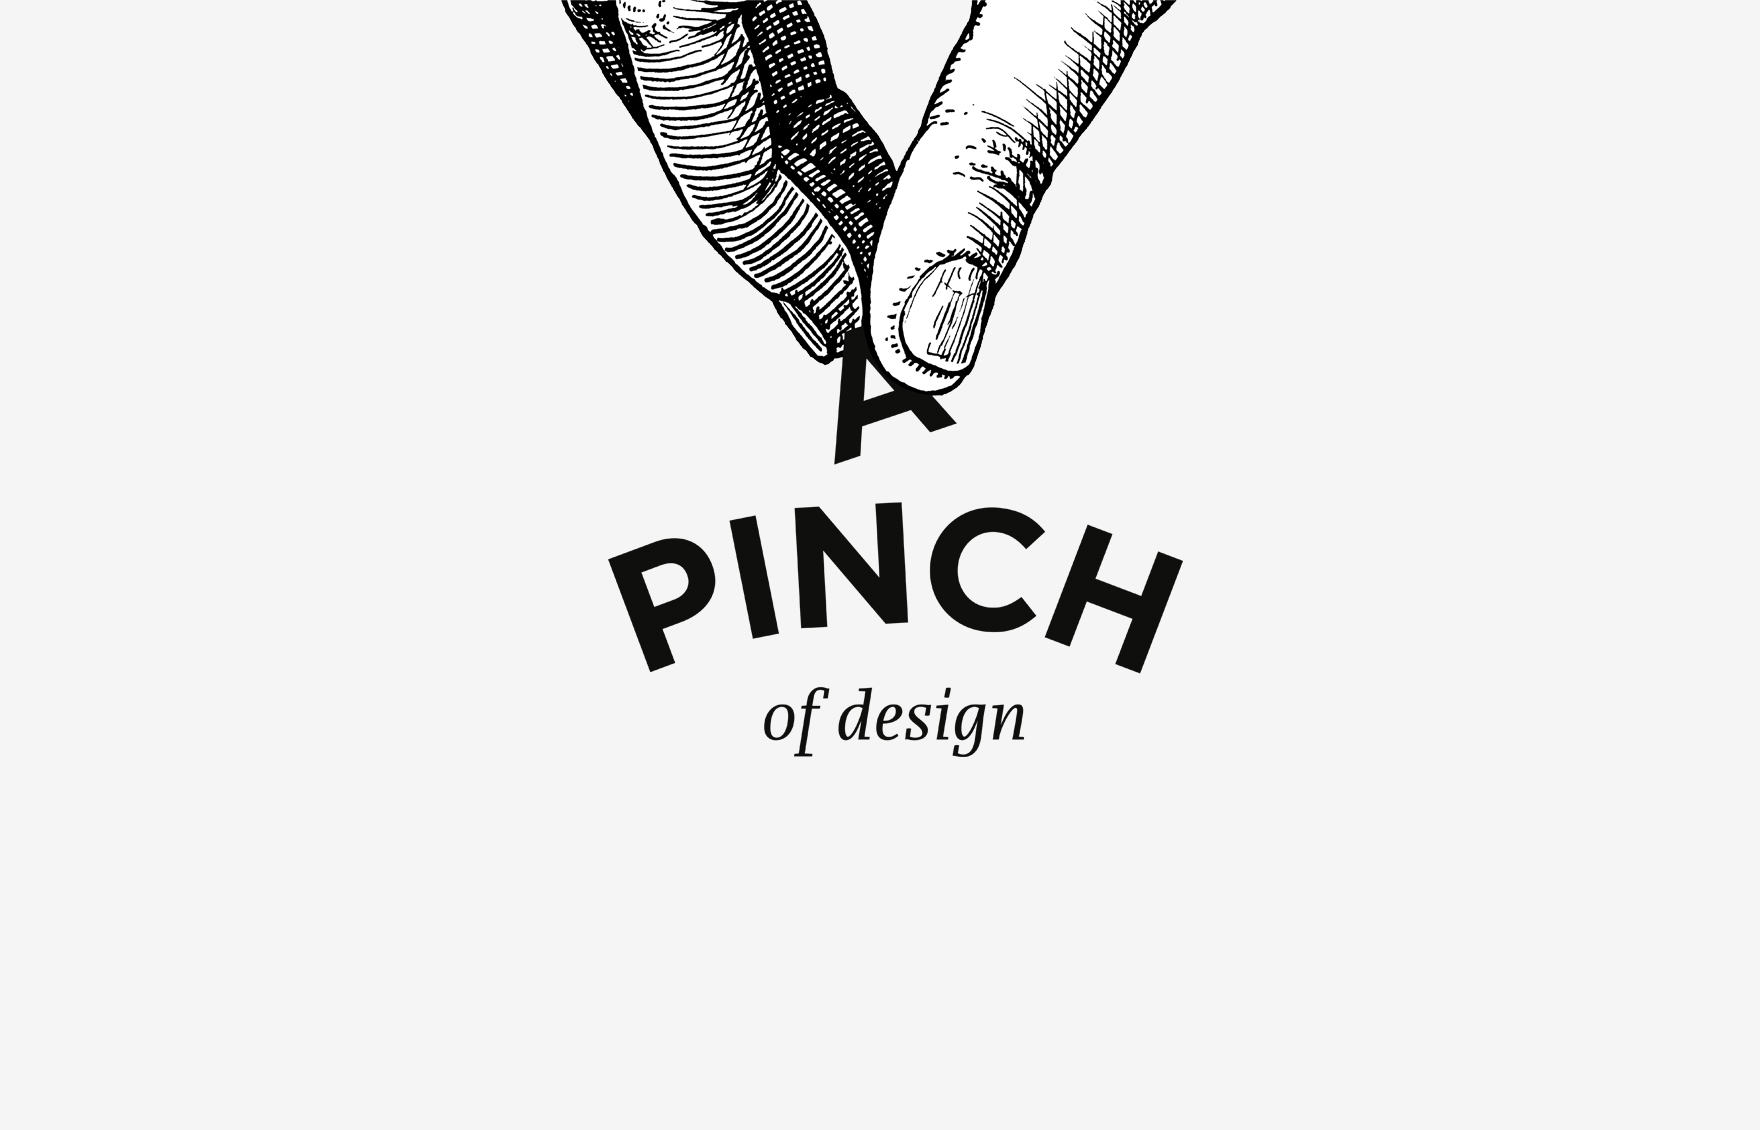 Pinch of design velika